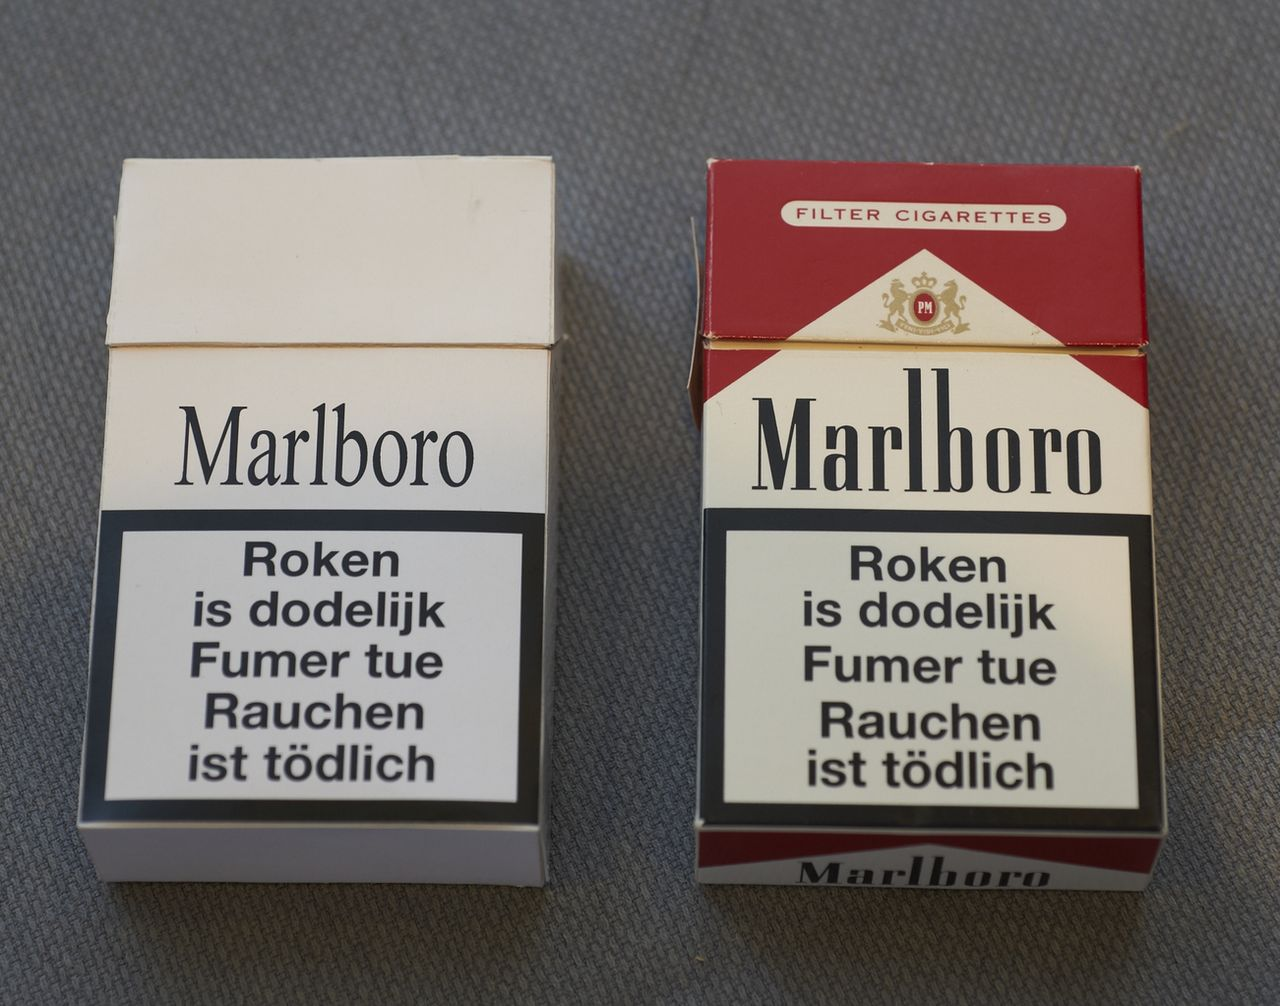 How much are Marlboro lights in Virginia